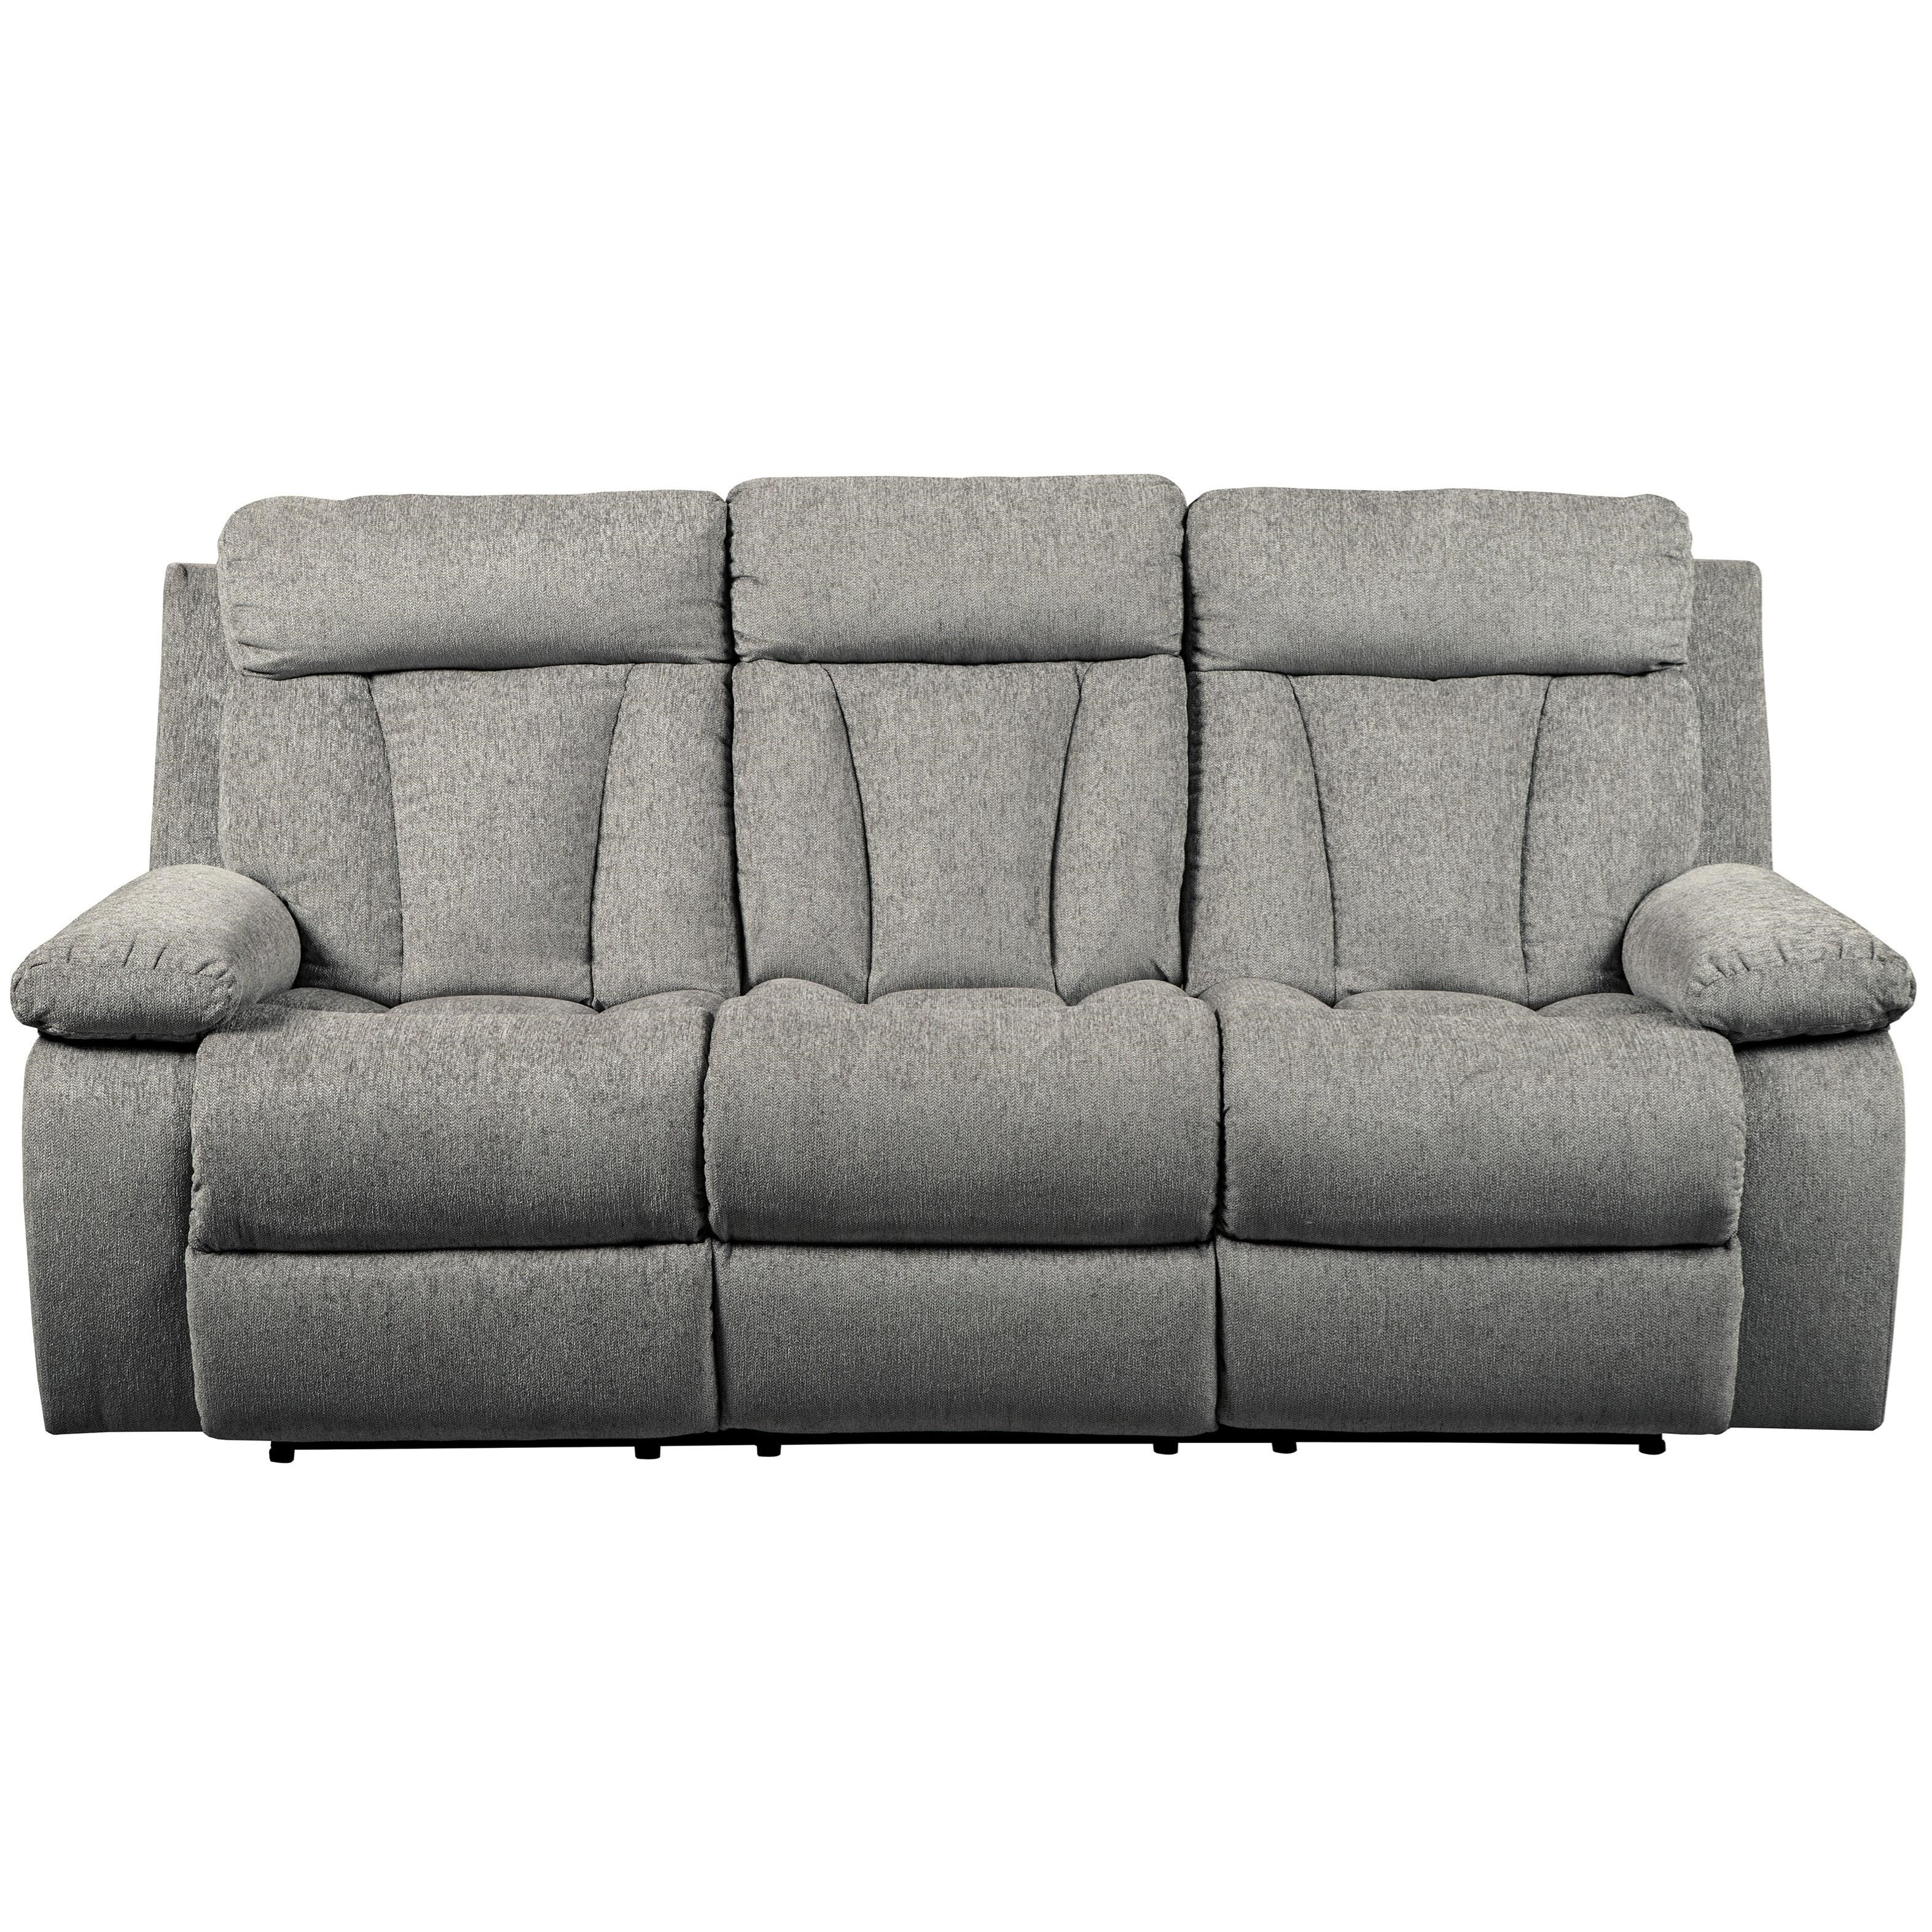 Middleton Reclining Sofa by Signature at Walker's Furniture